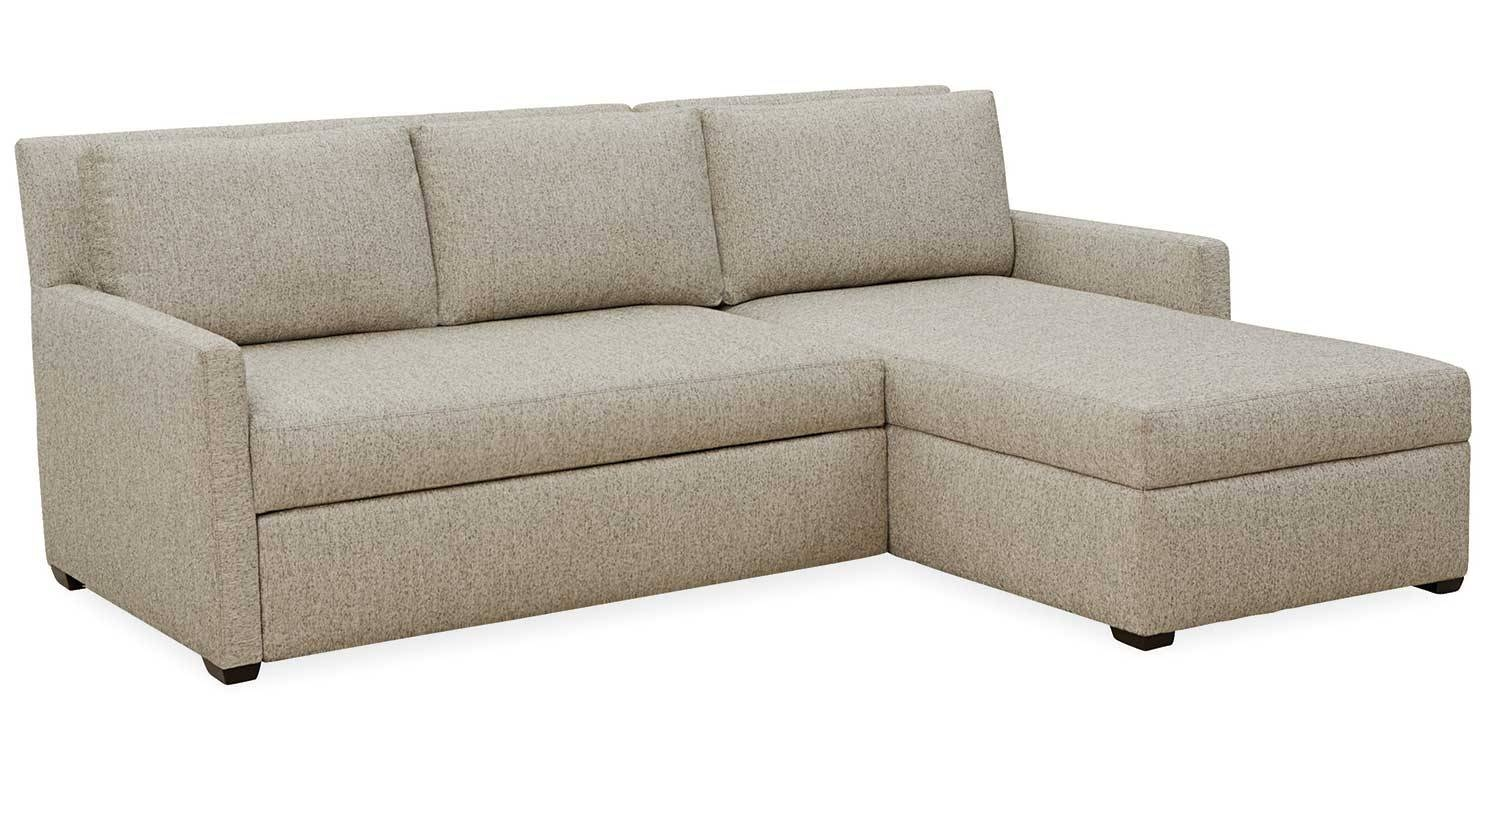 Circle Furniture - Sleeper Sofa | Sectional Sleepers | Circle within Austin Sleeper Sofas (Image 4 of 15)